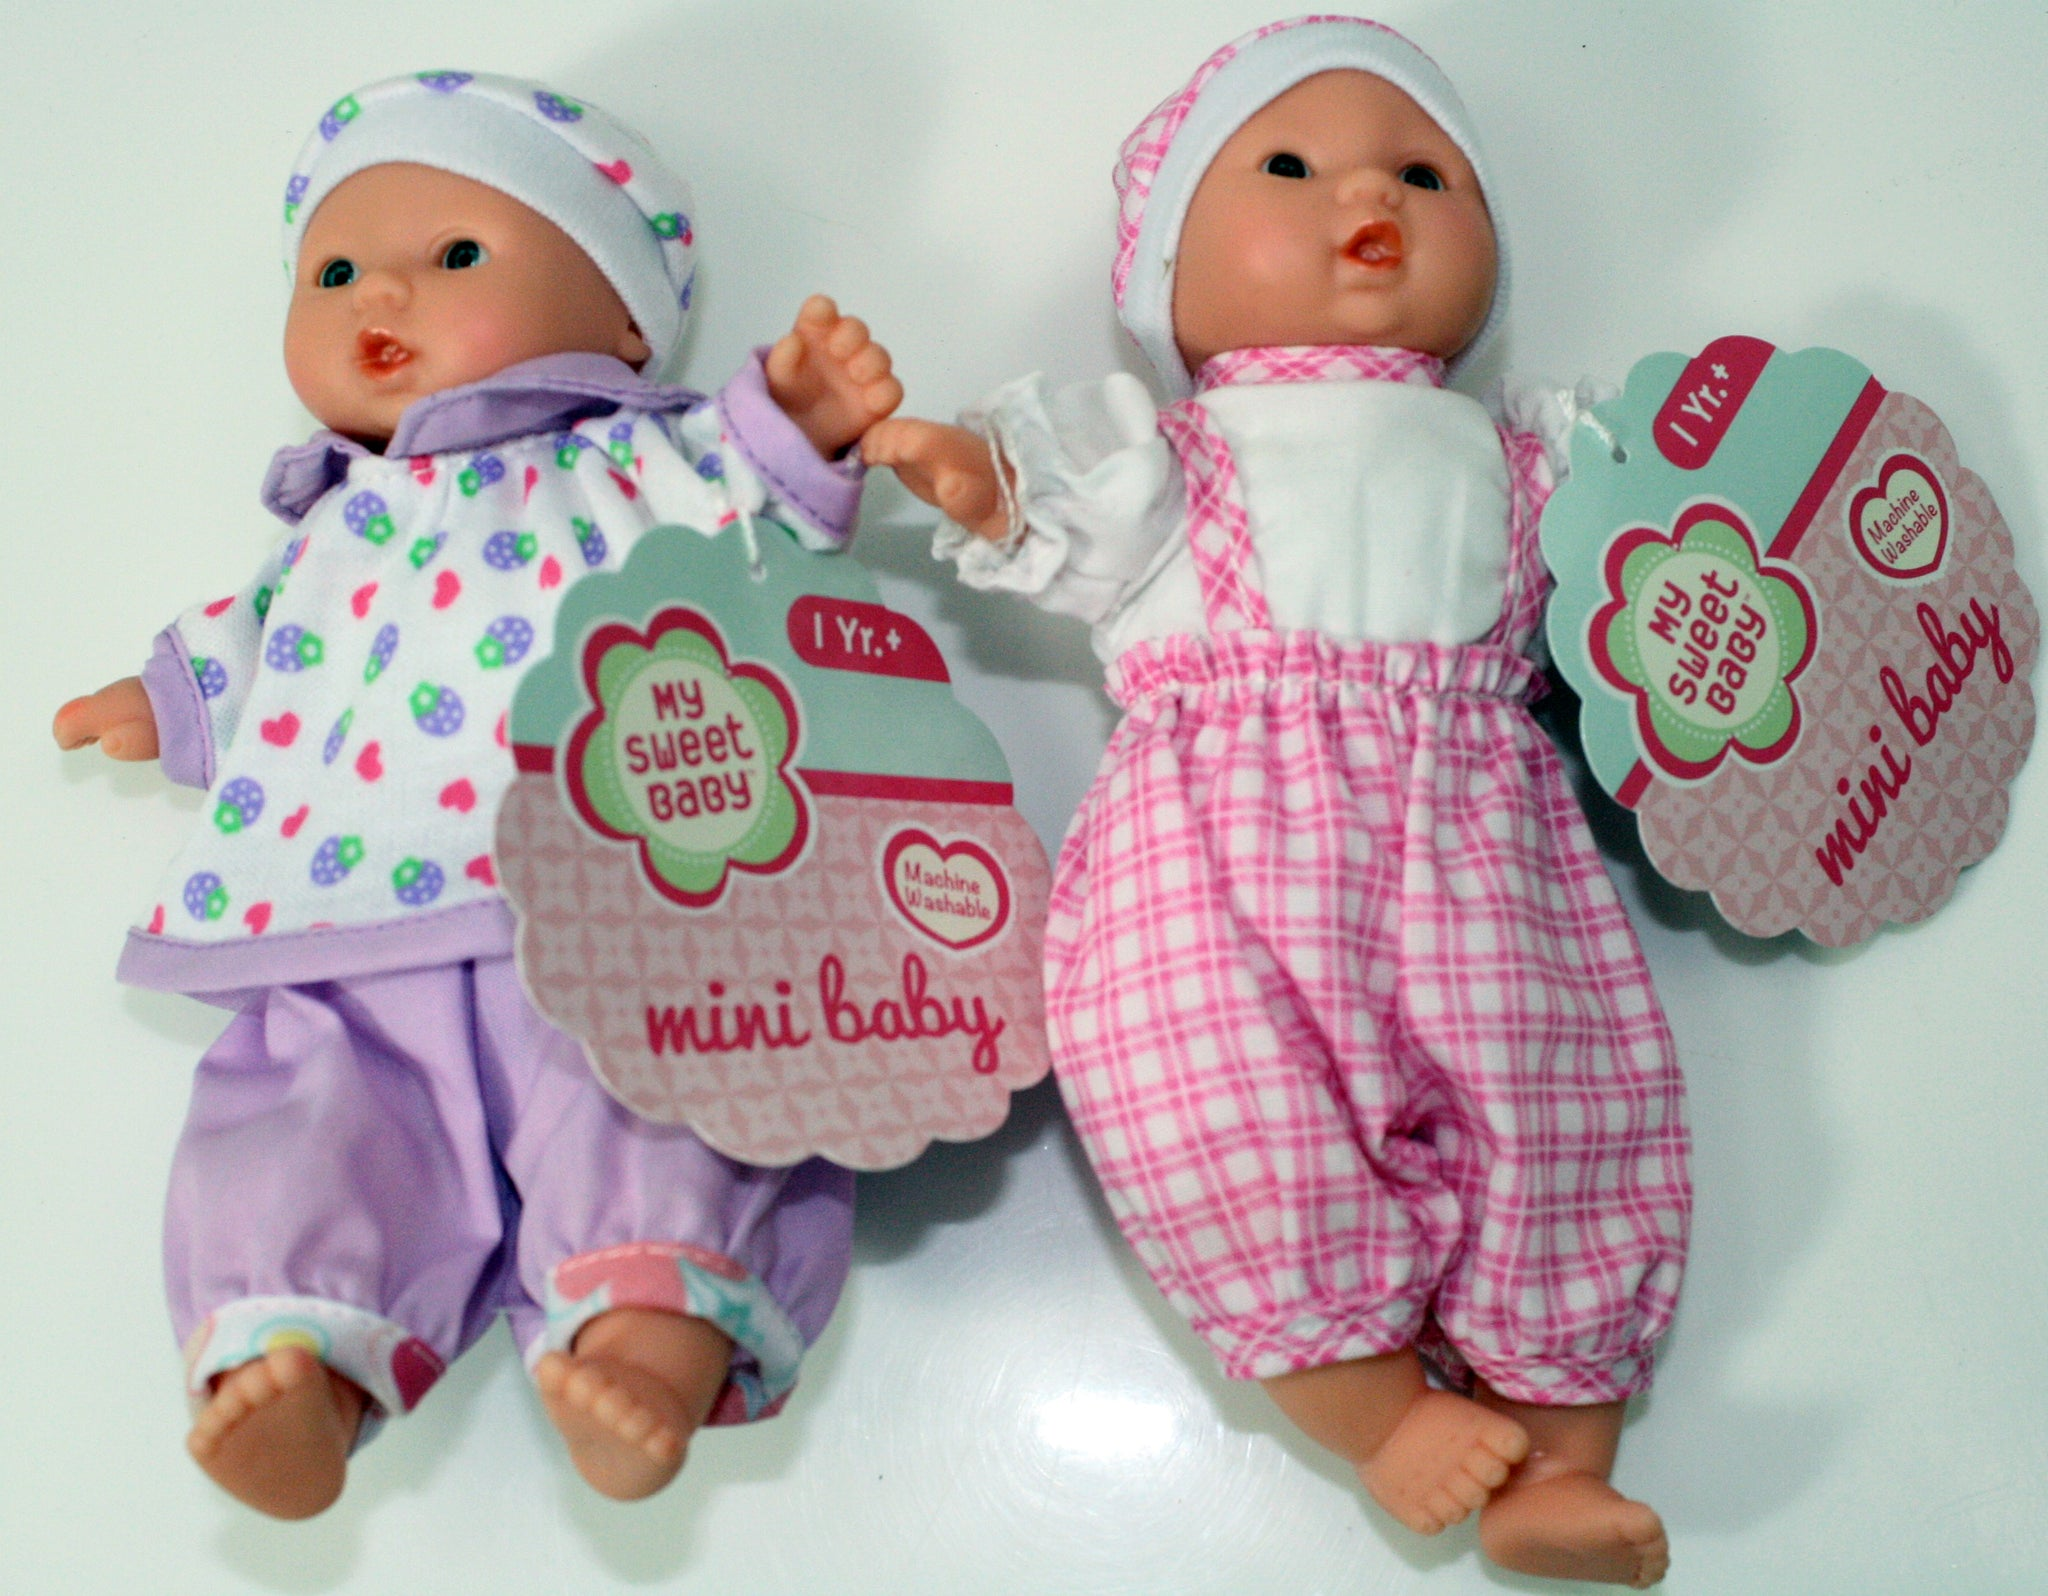 my sweet baby mini doll set of 2 by toysmith off the wall toys and